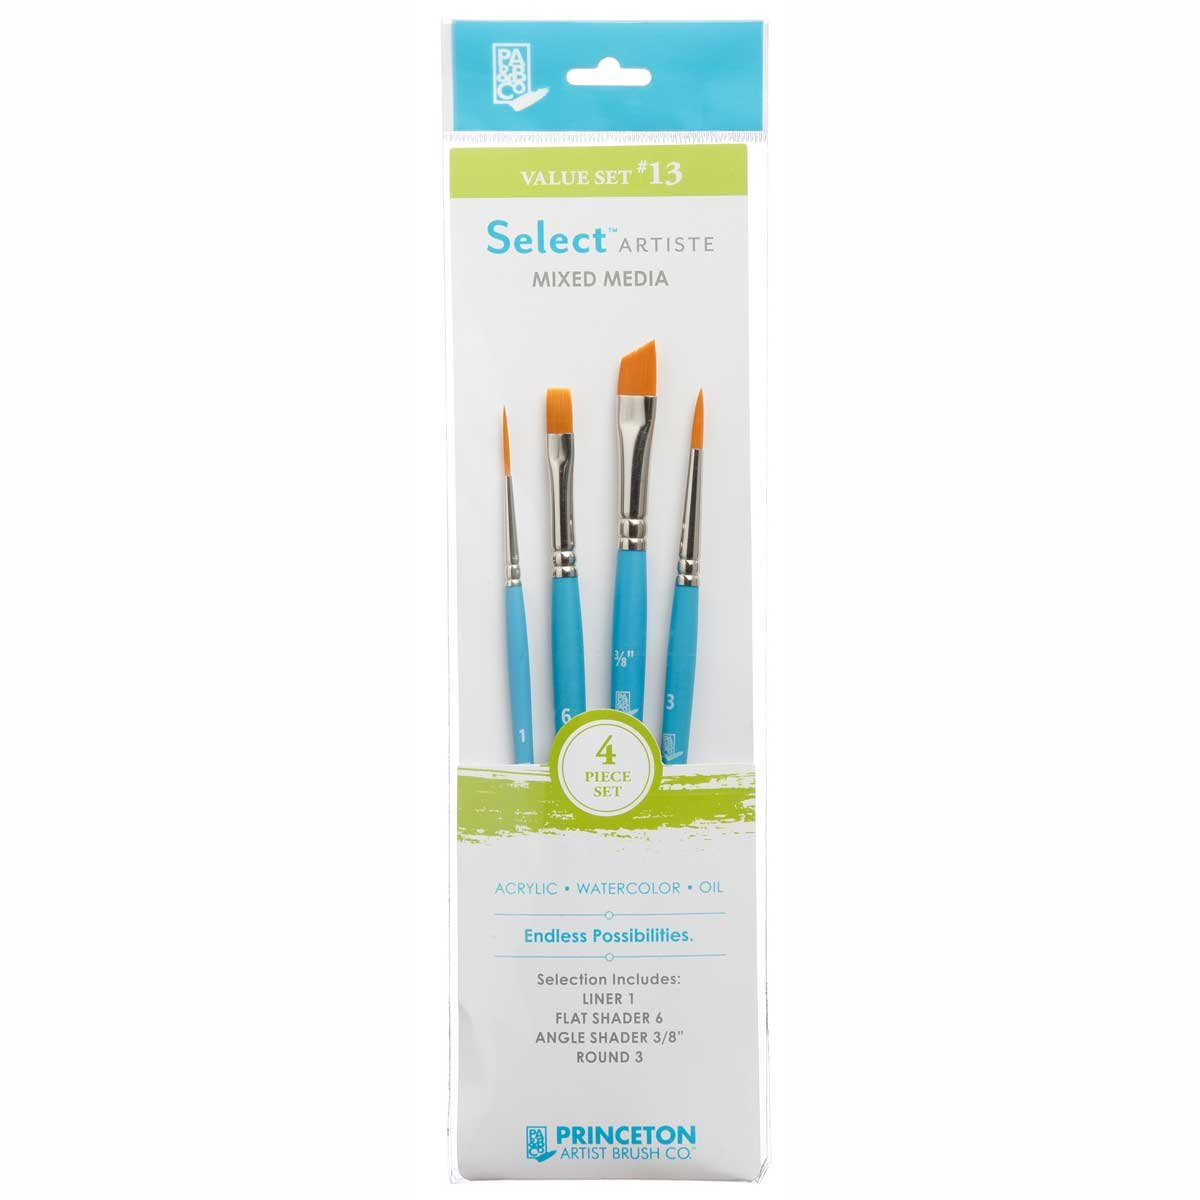 Princeton Select Artiste, Mixed-Media Brushes for Acrylic, Oil, Watercolor Series 3750, 4 Piece Value Set 113